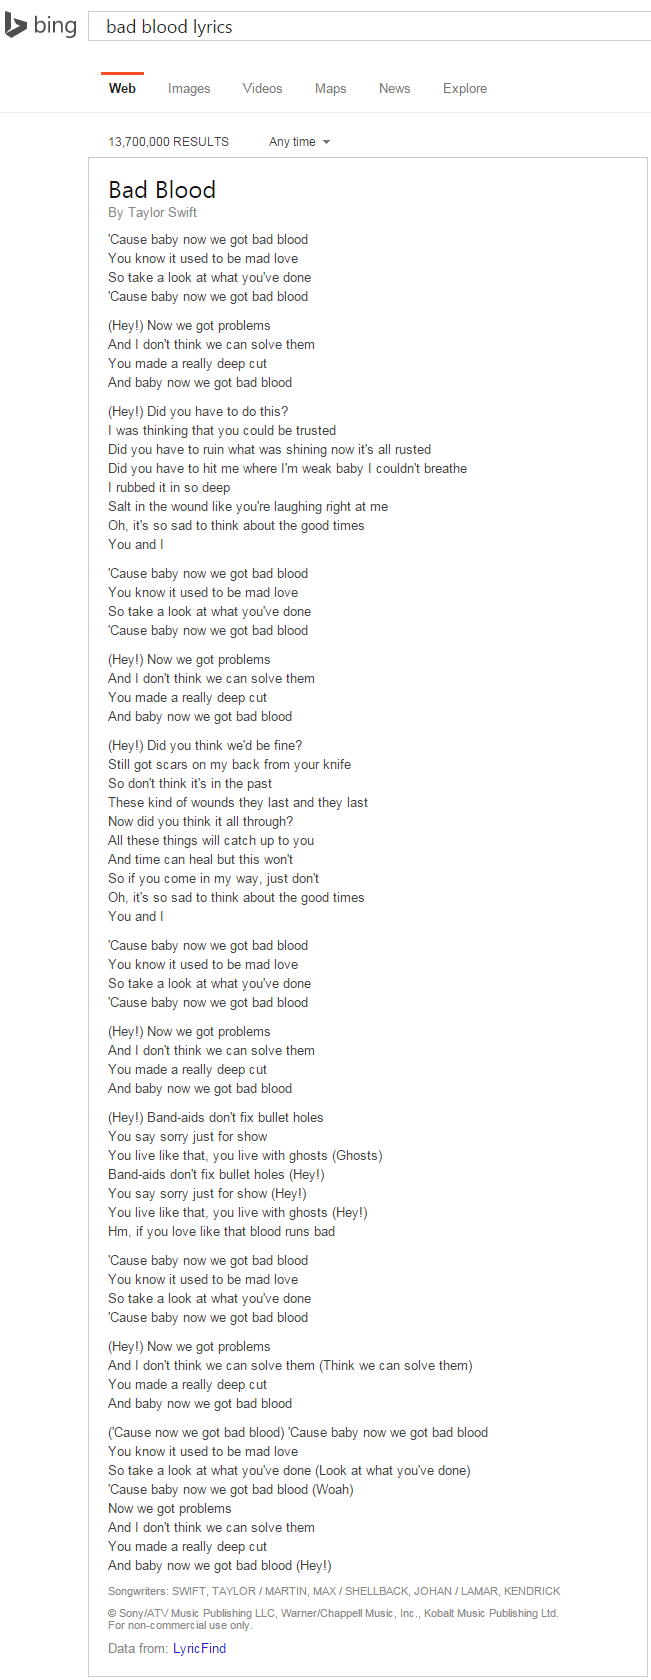 bing lyrics 1